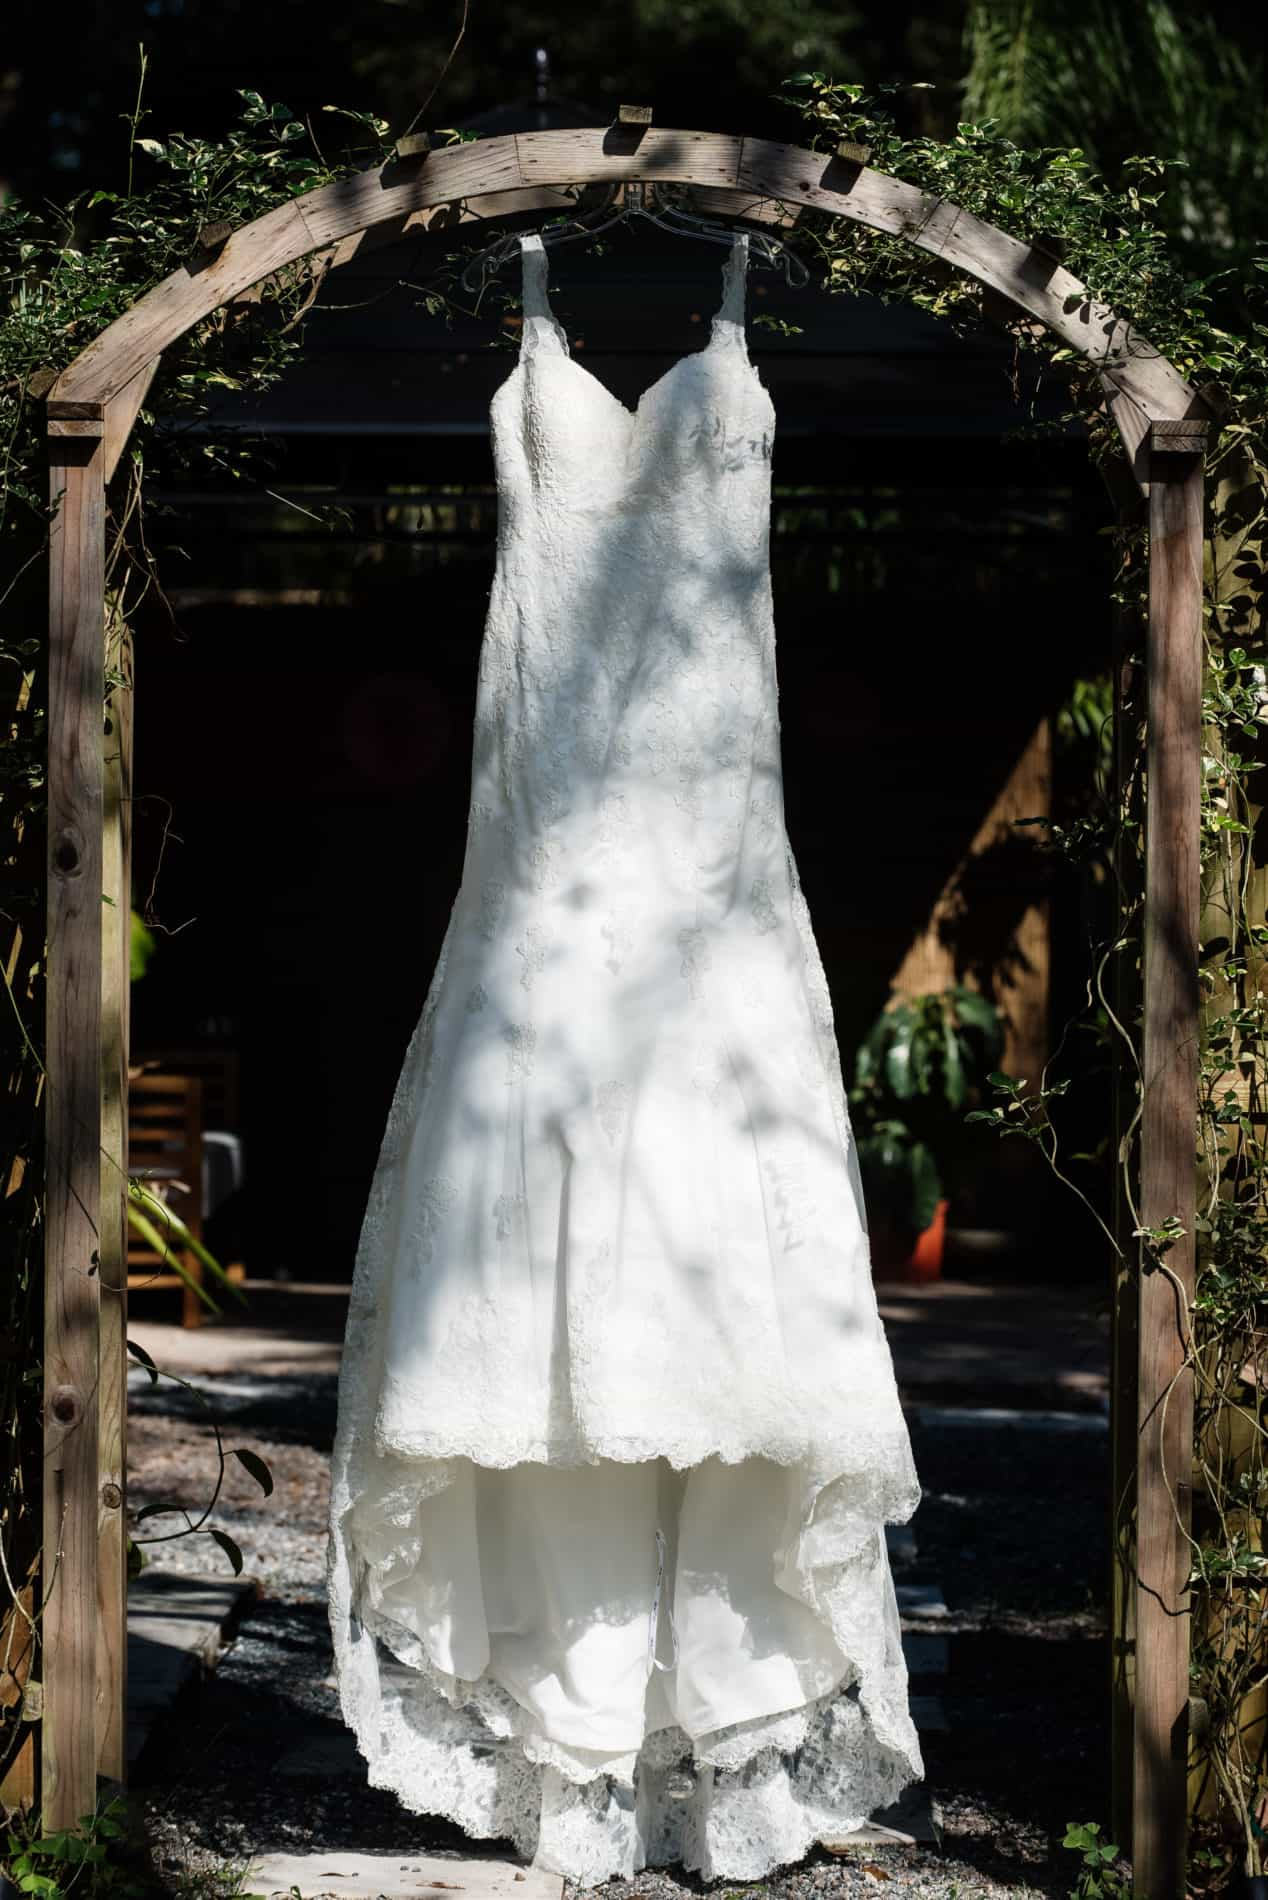 Wedding Dress in rustic arch before outdoor wedding